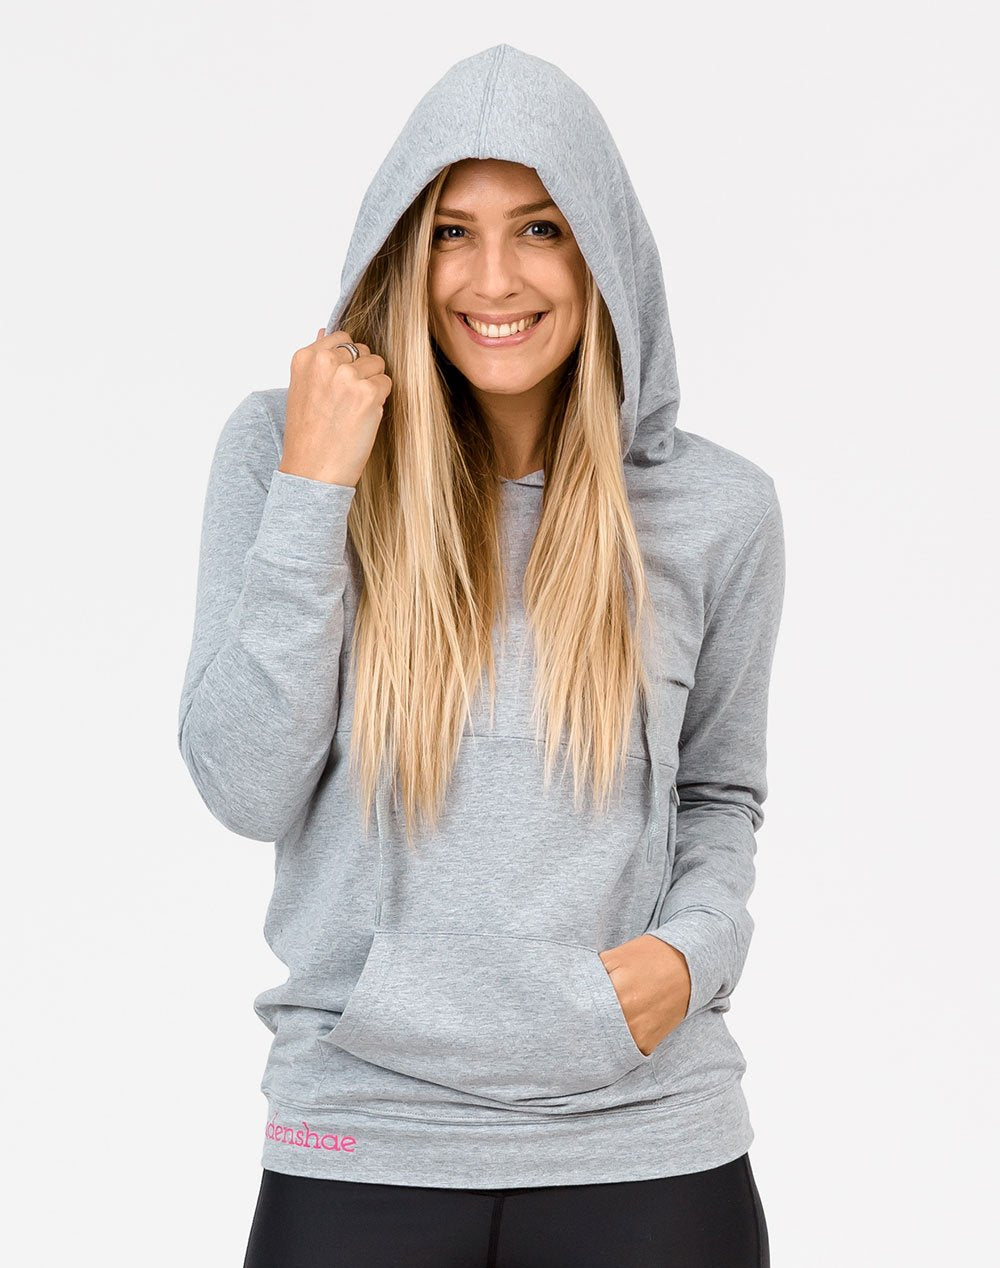 front view active mum wearing a grey casual breastfeeding hoodie with the hood up